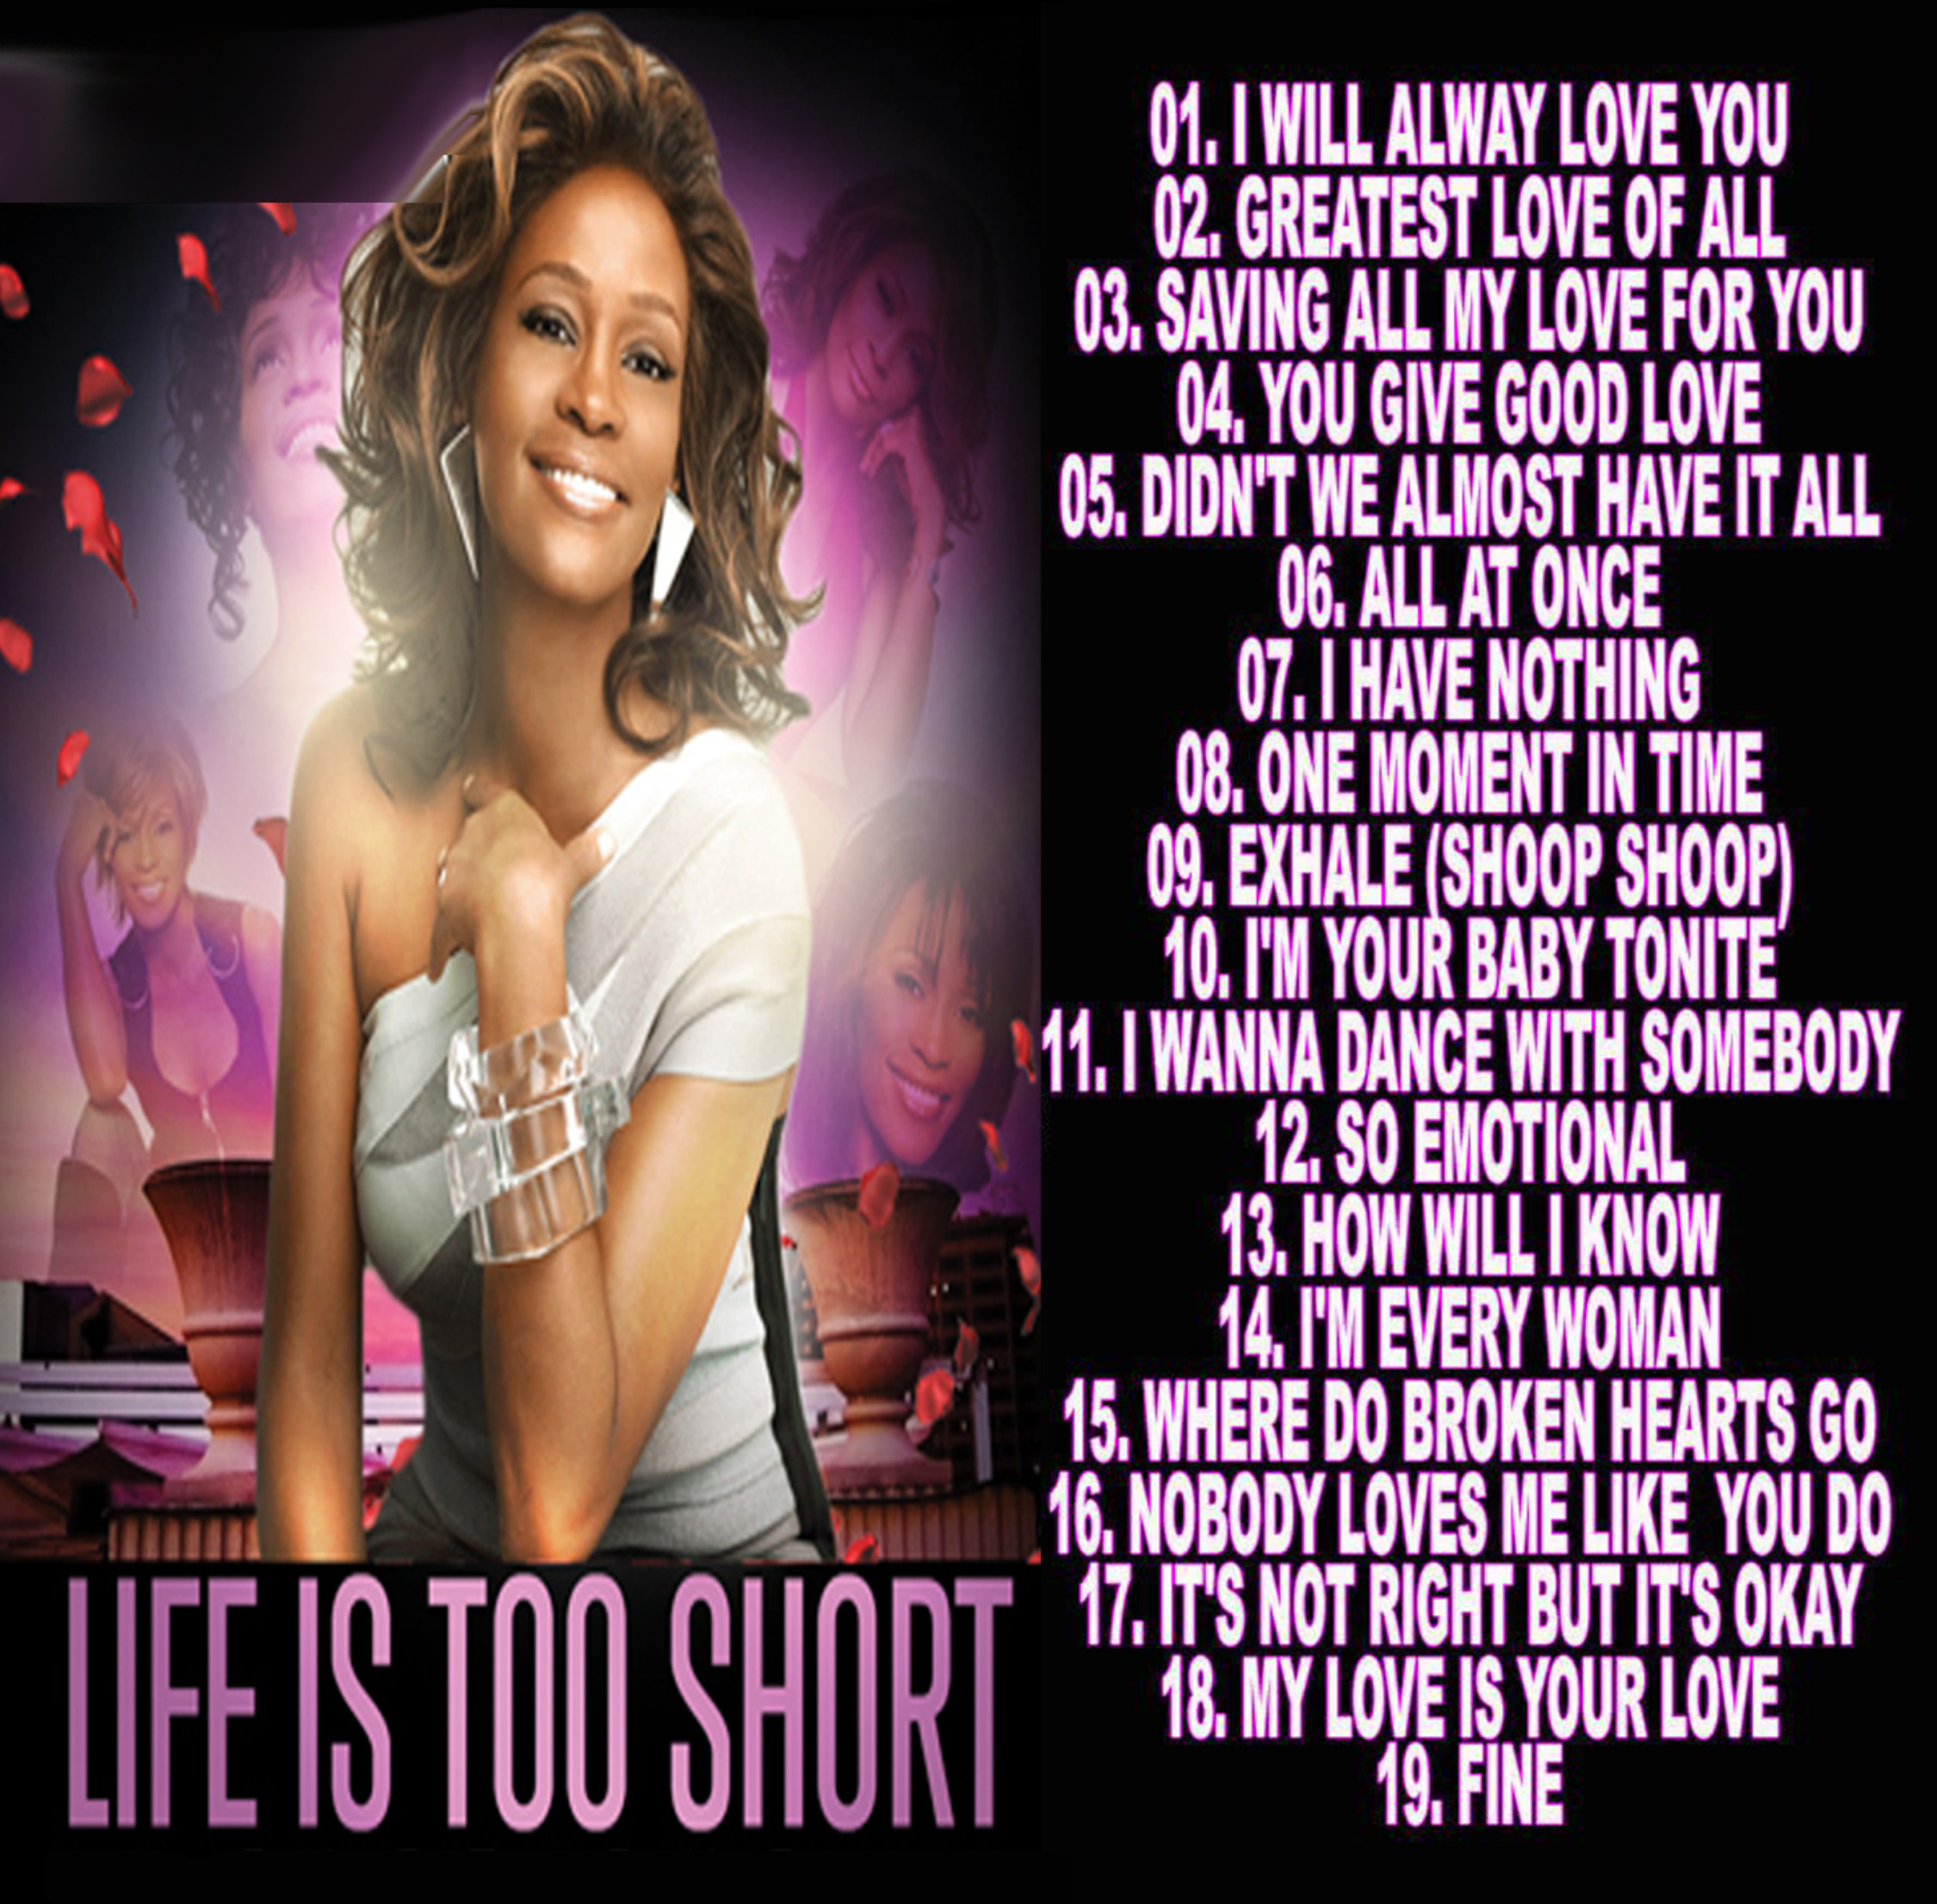 WHITNEY / Life Is Too Short Mix MP3